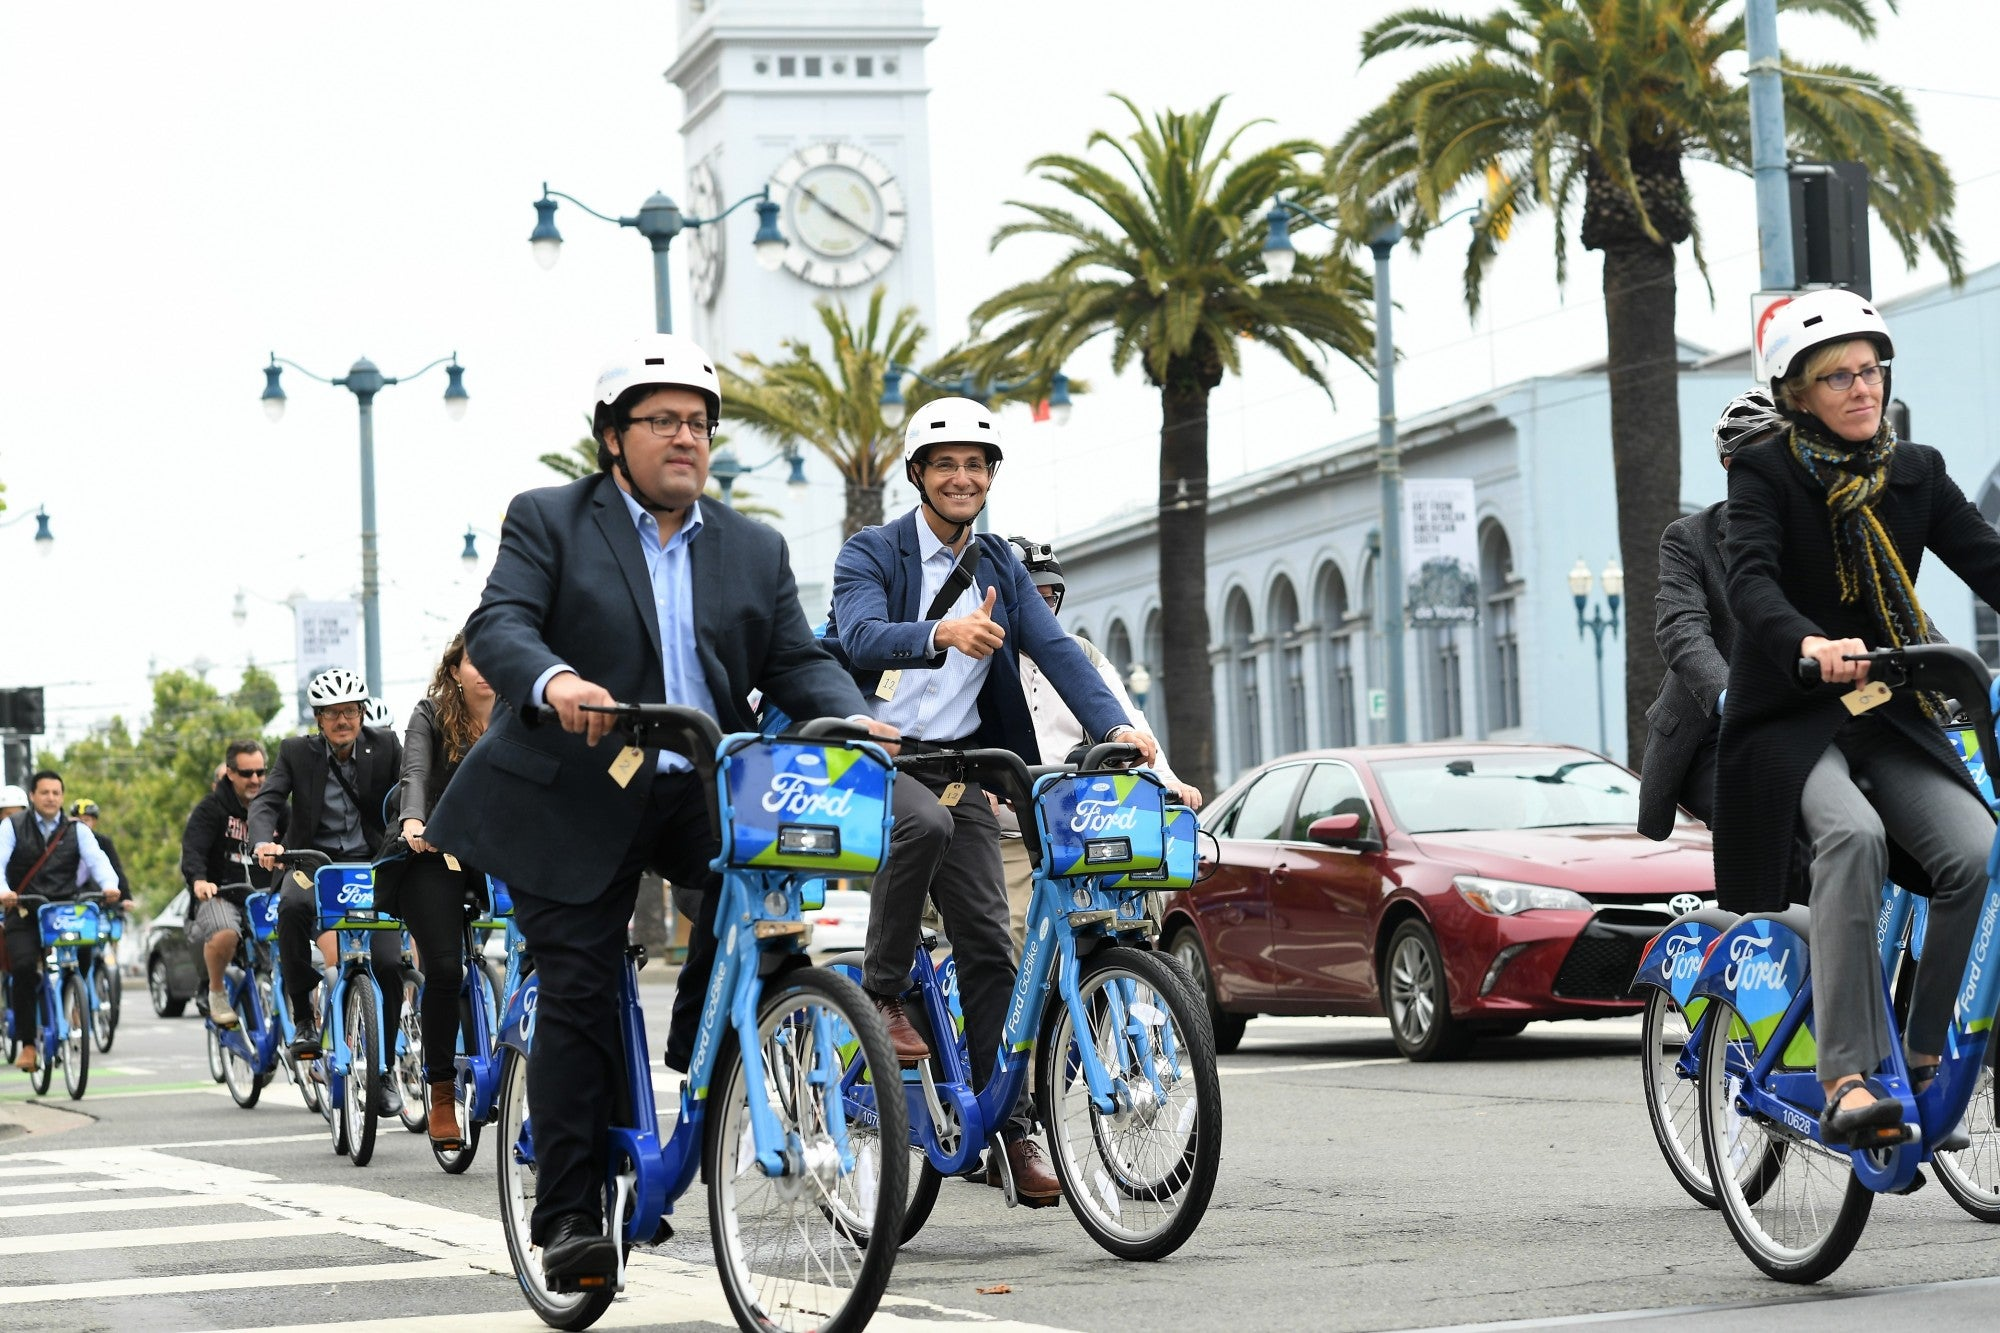 Individuals riding Ford GoBikes in front of the San Francisco Ferry Building.